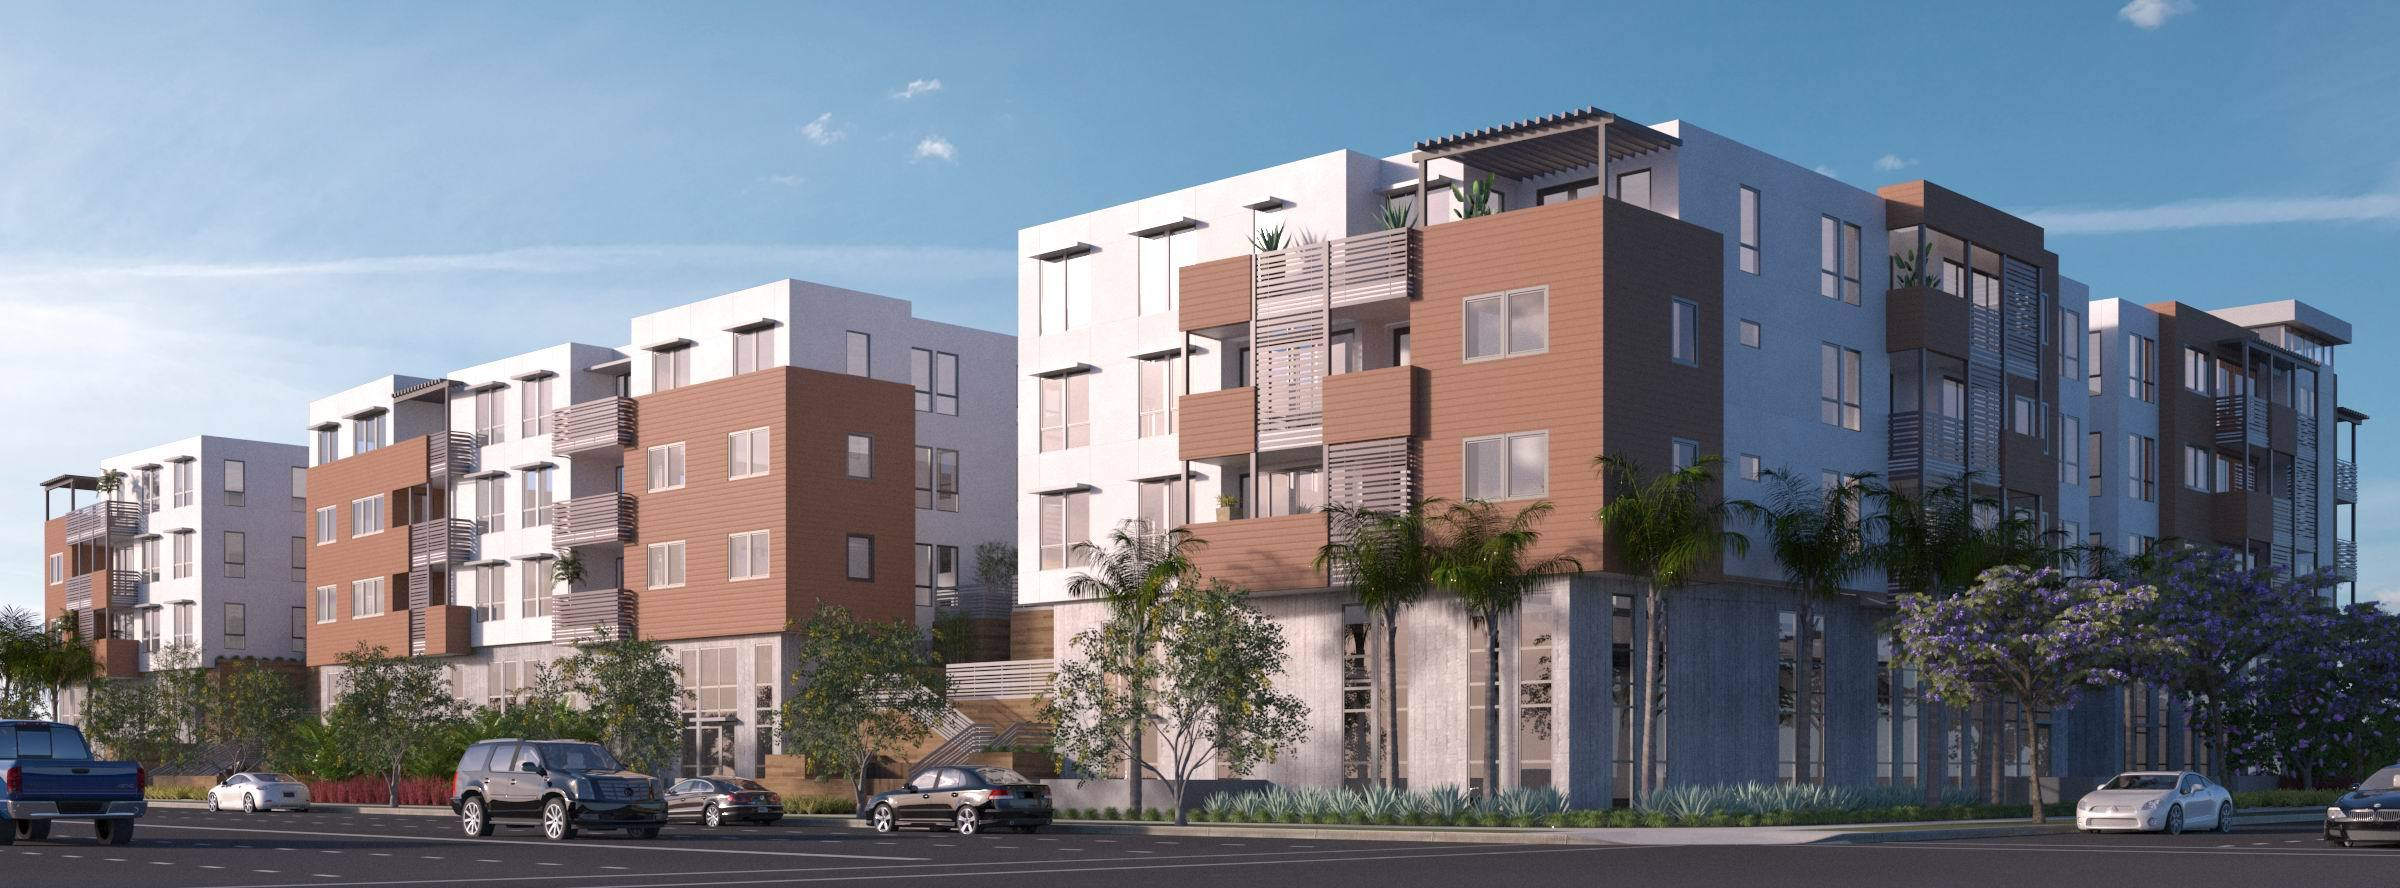 New Condo & Townhome Construction in Bellflower, CA